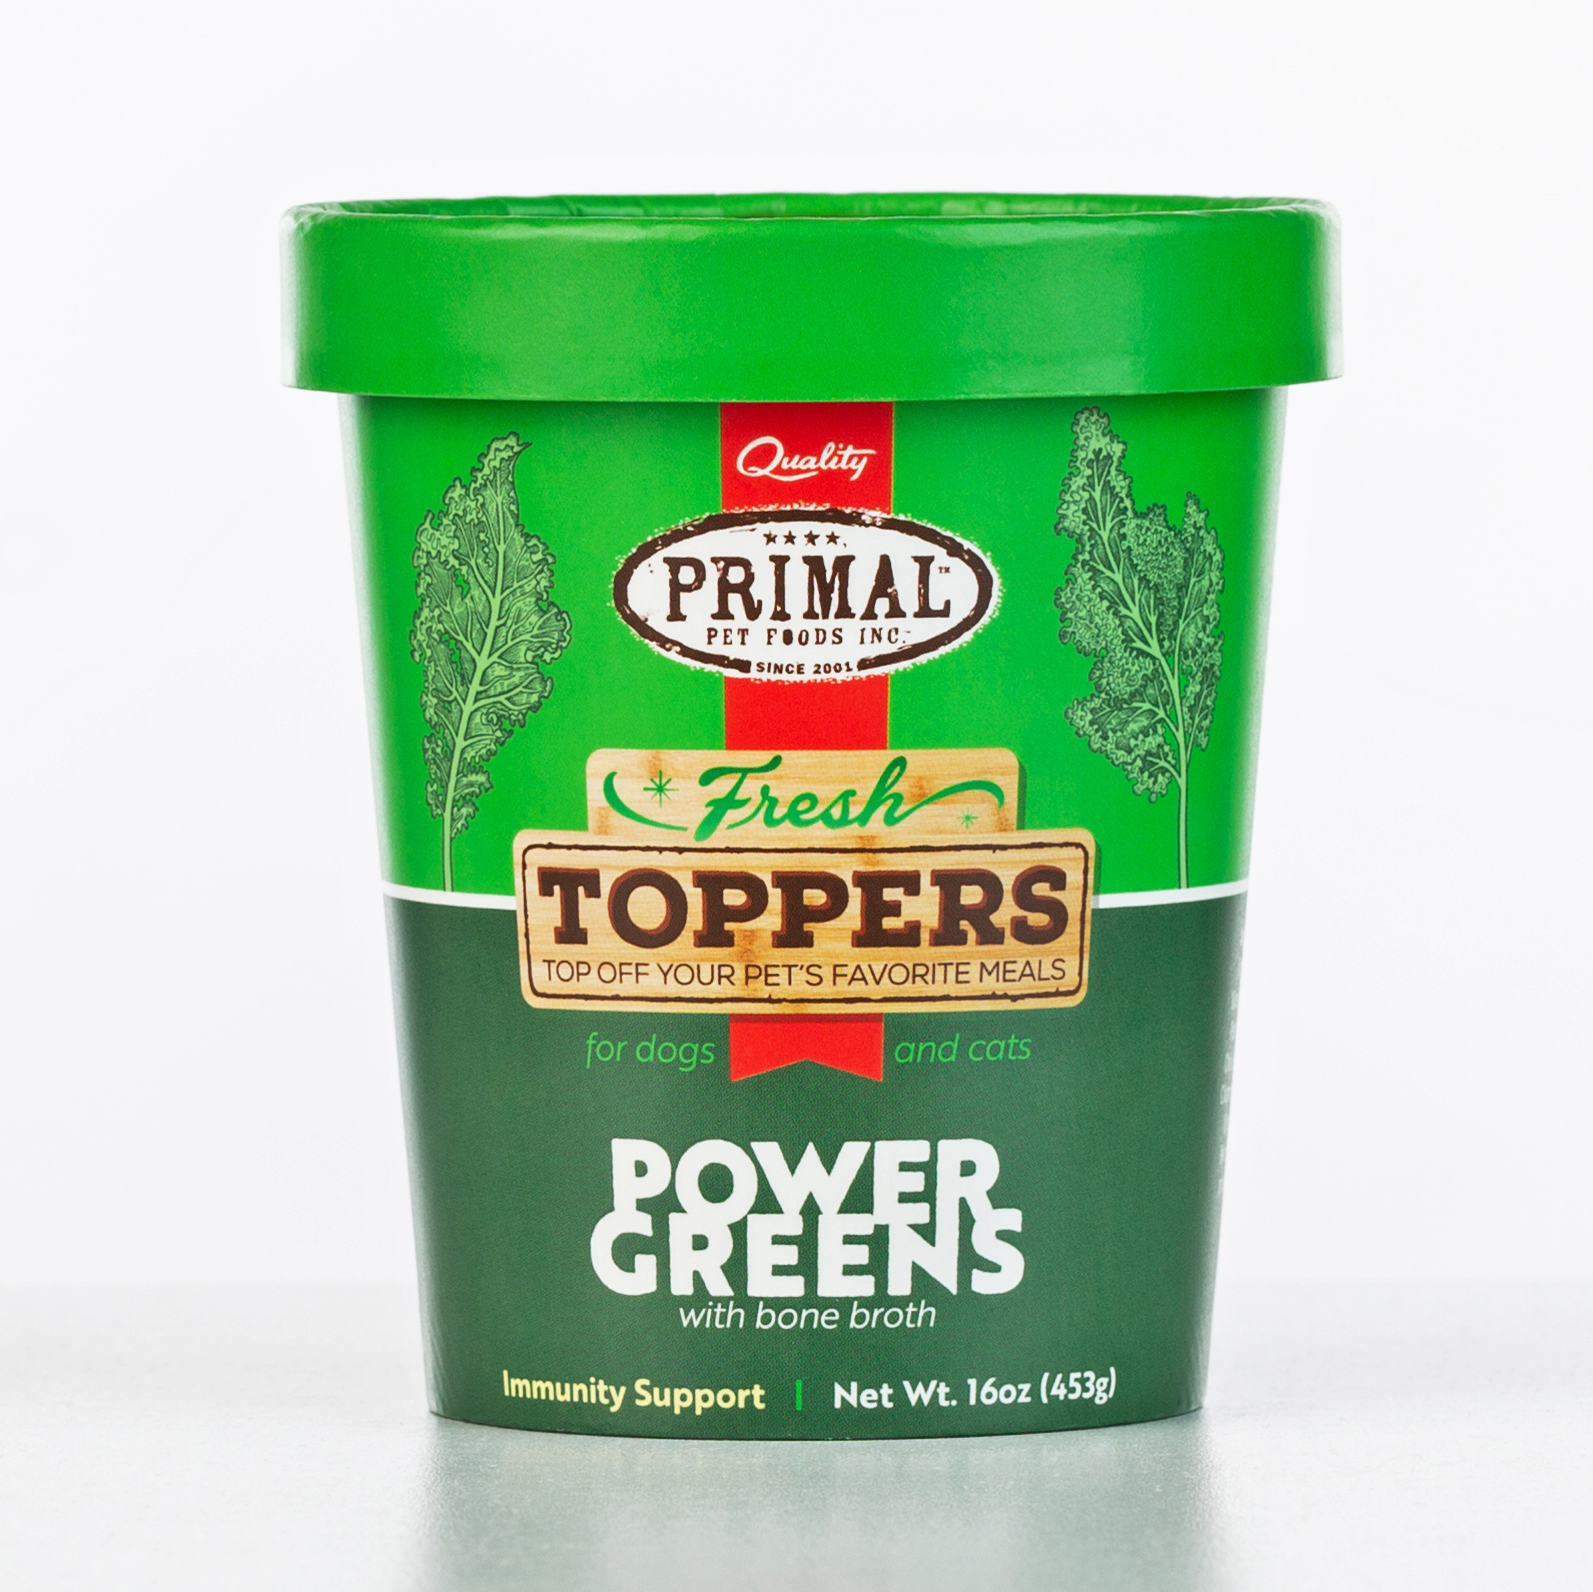 Primal Fresh Toppers Power Greens, Frozen Dog & Cat Food Topper Image